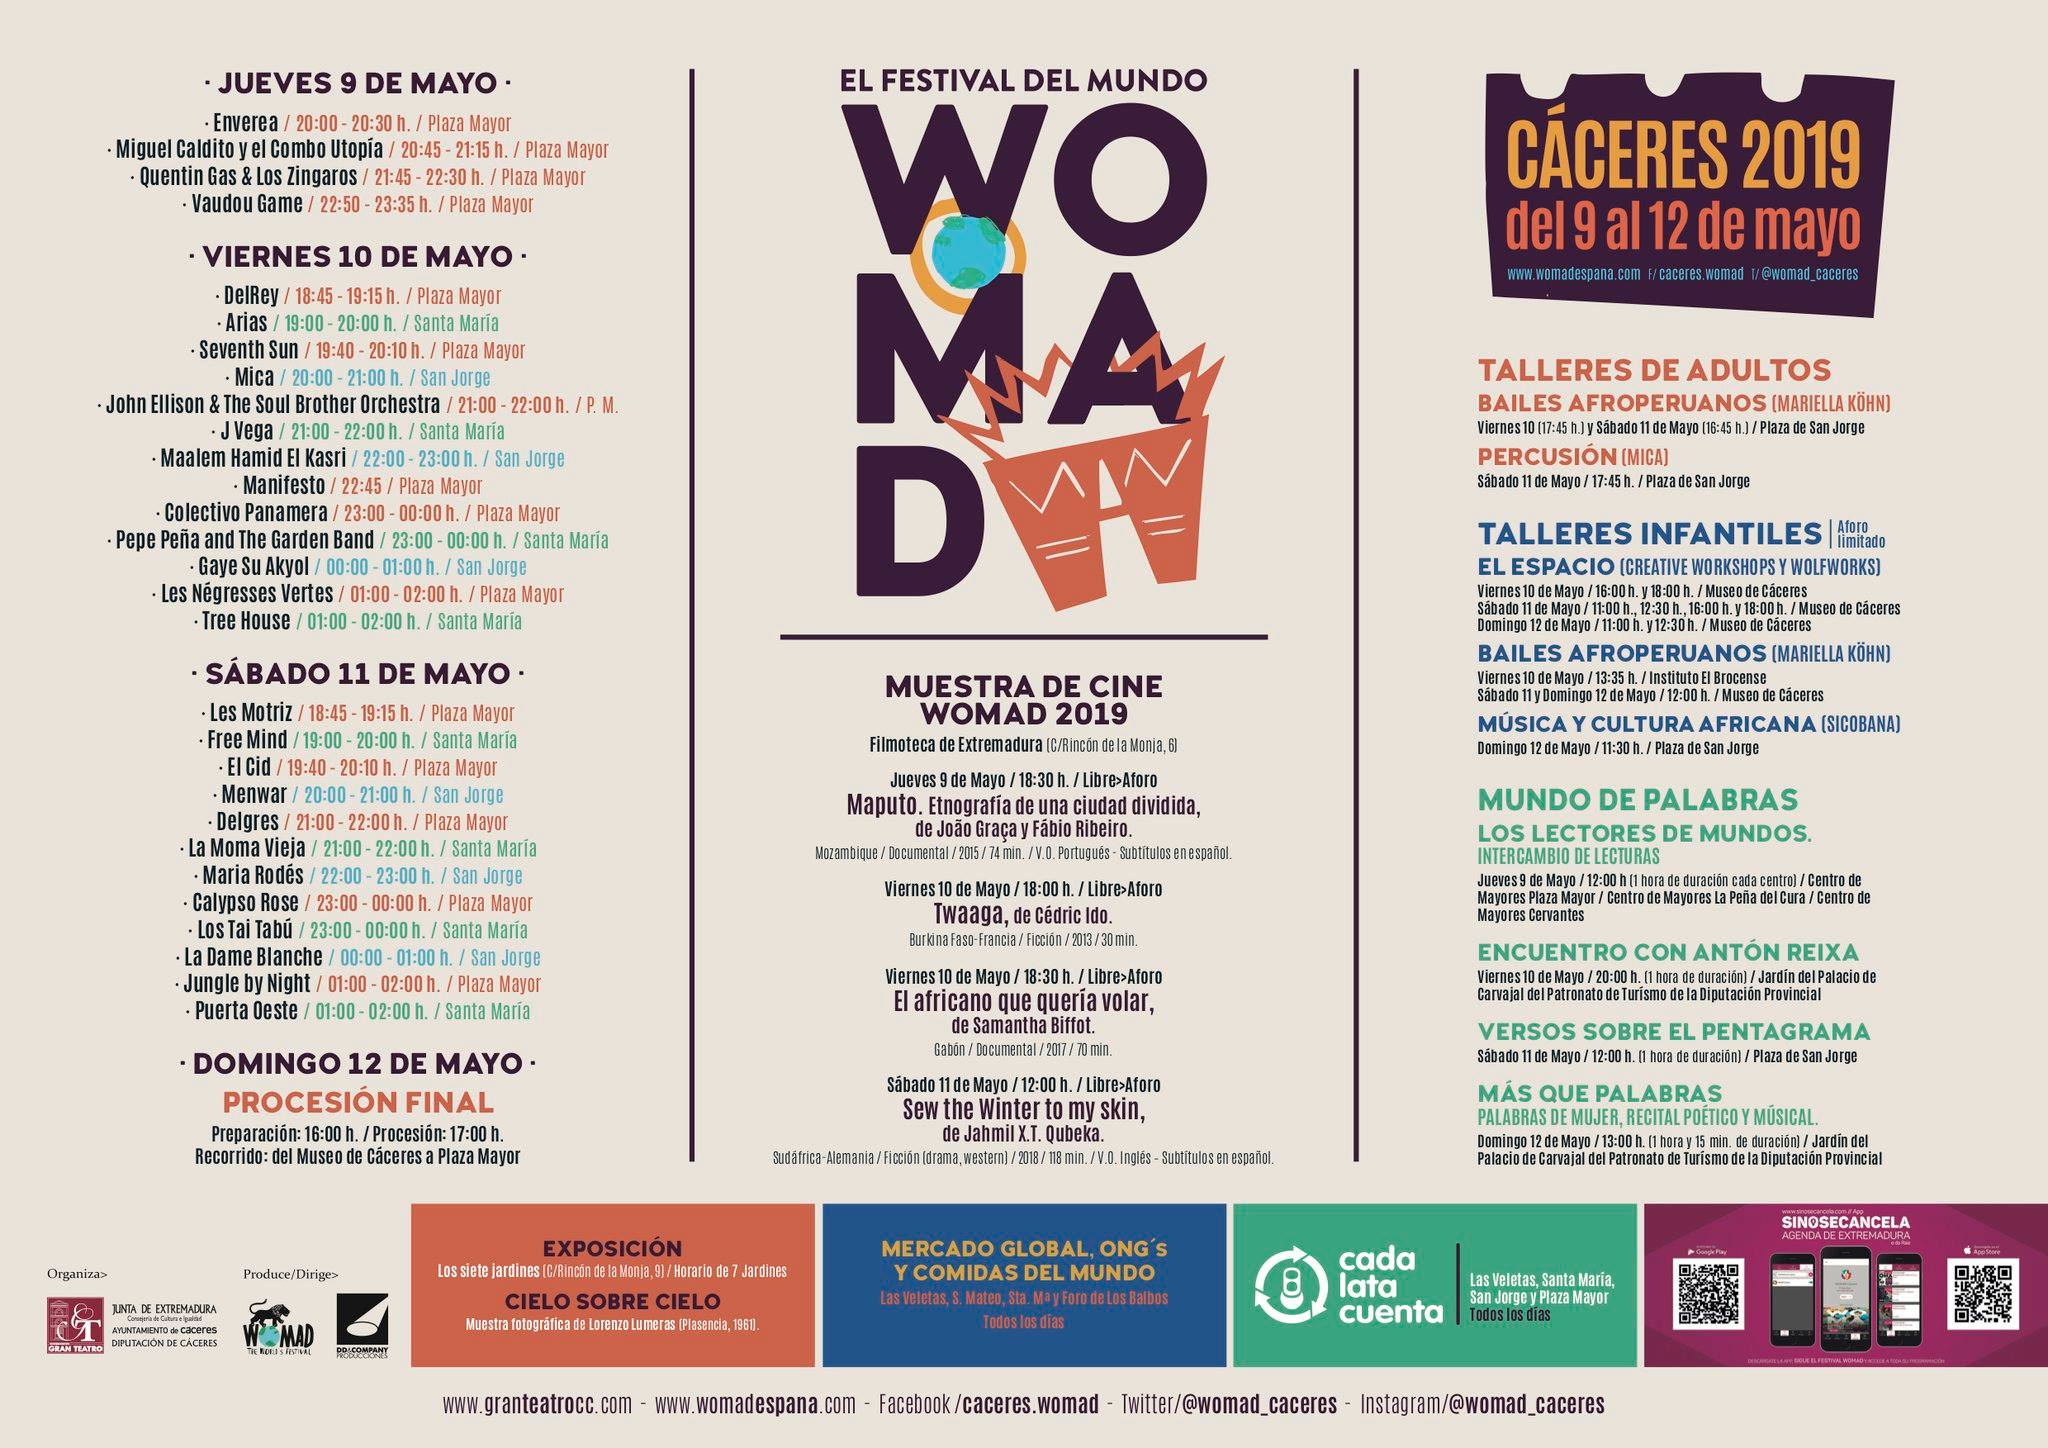 WOMAD 2019 - Cáceres 2